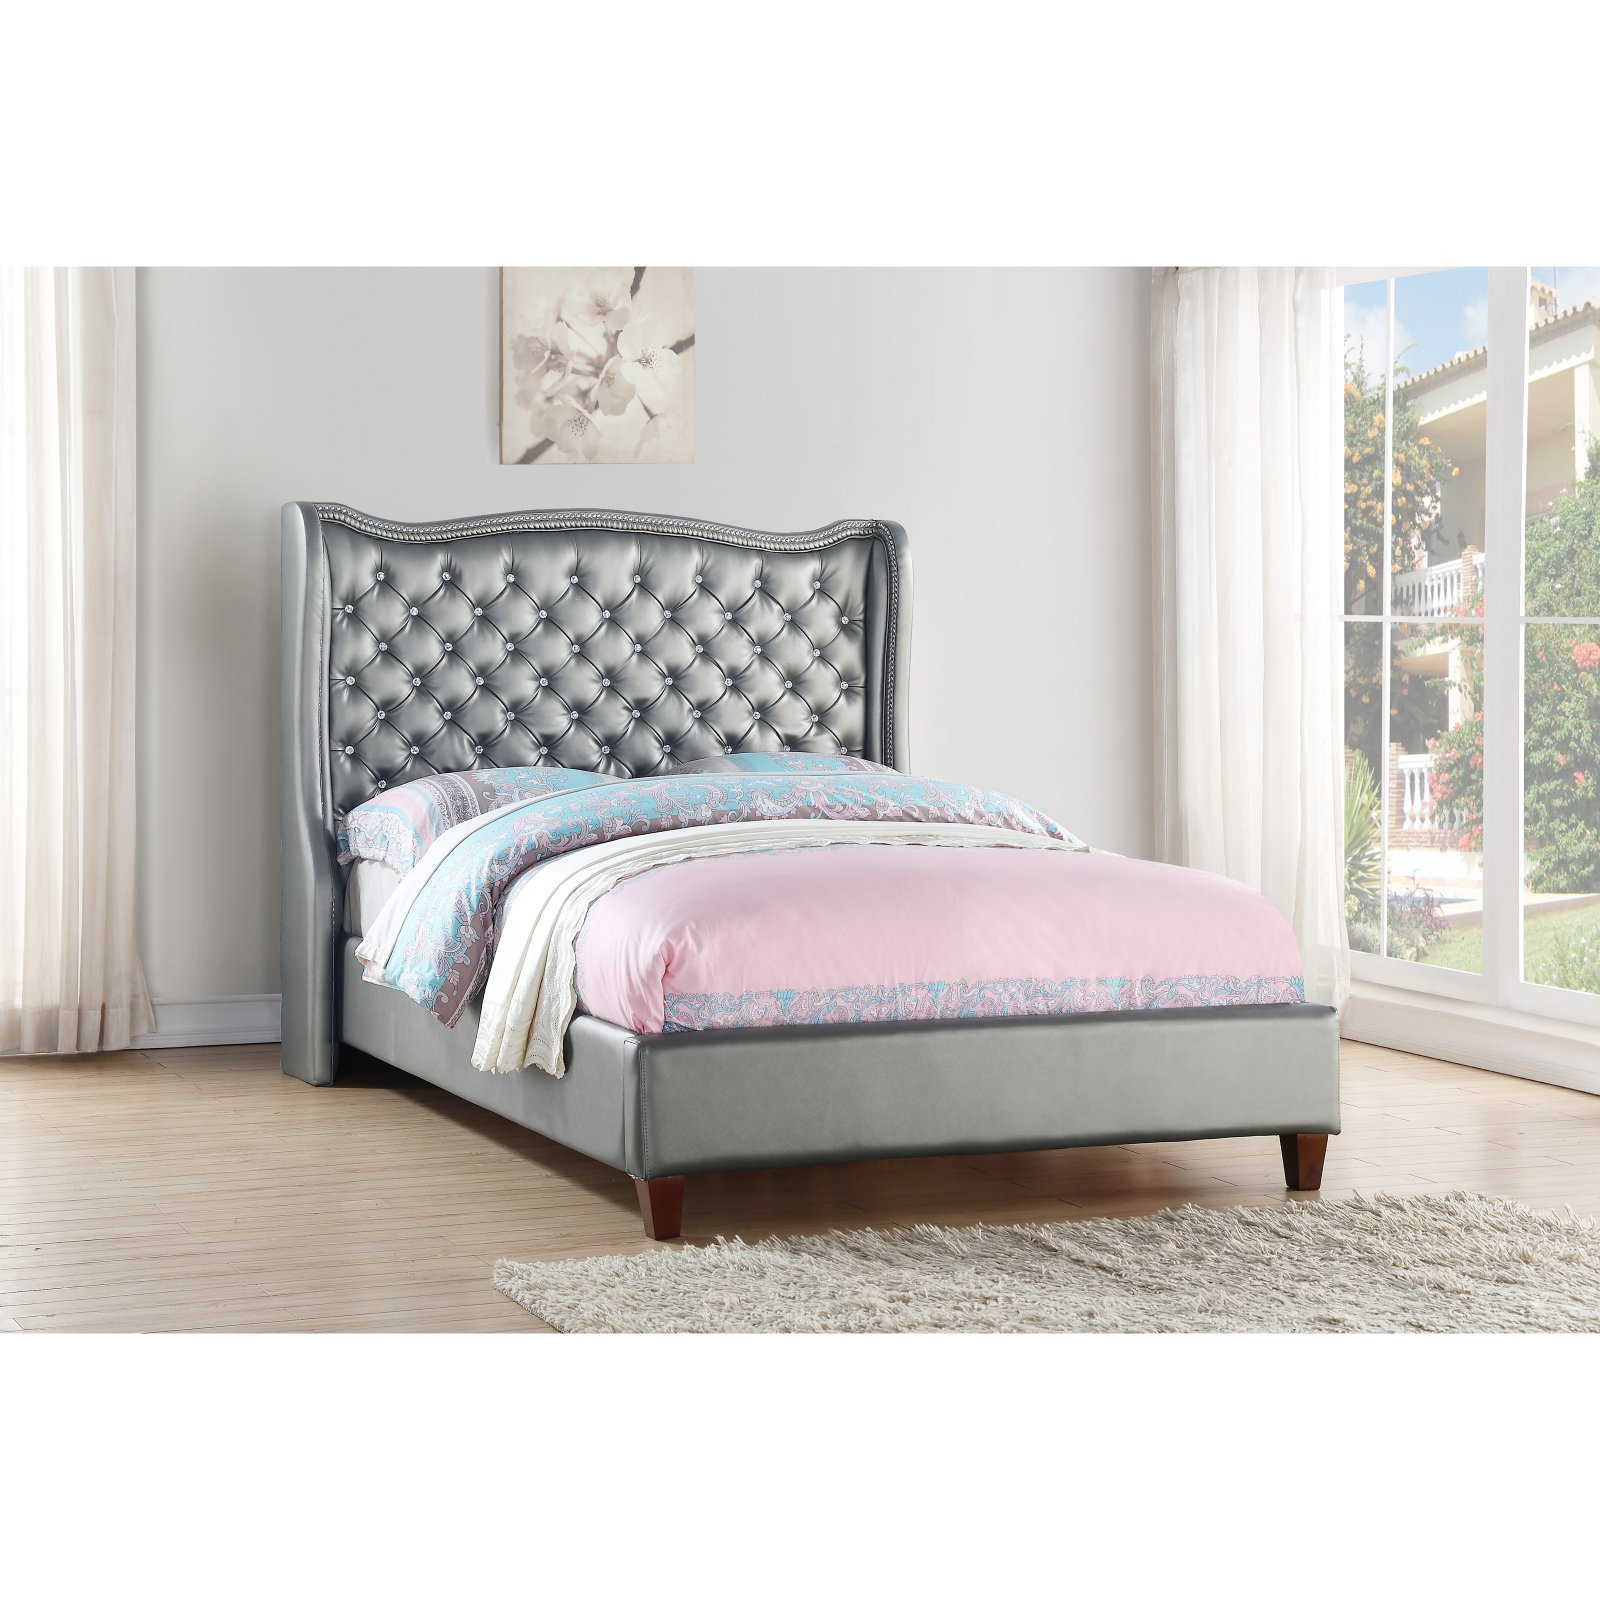 Donco Kids Madison Youth Bed